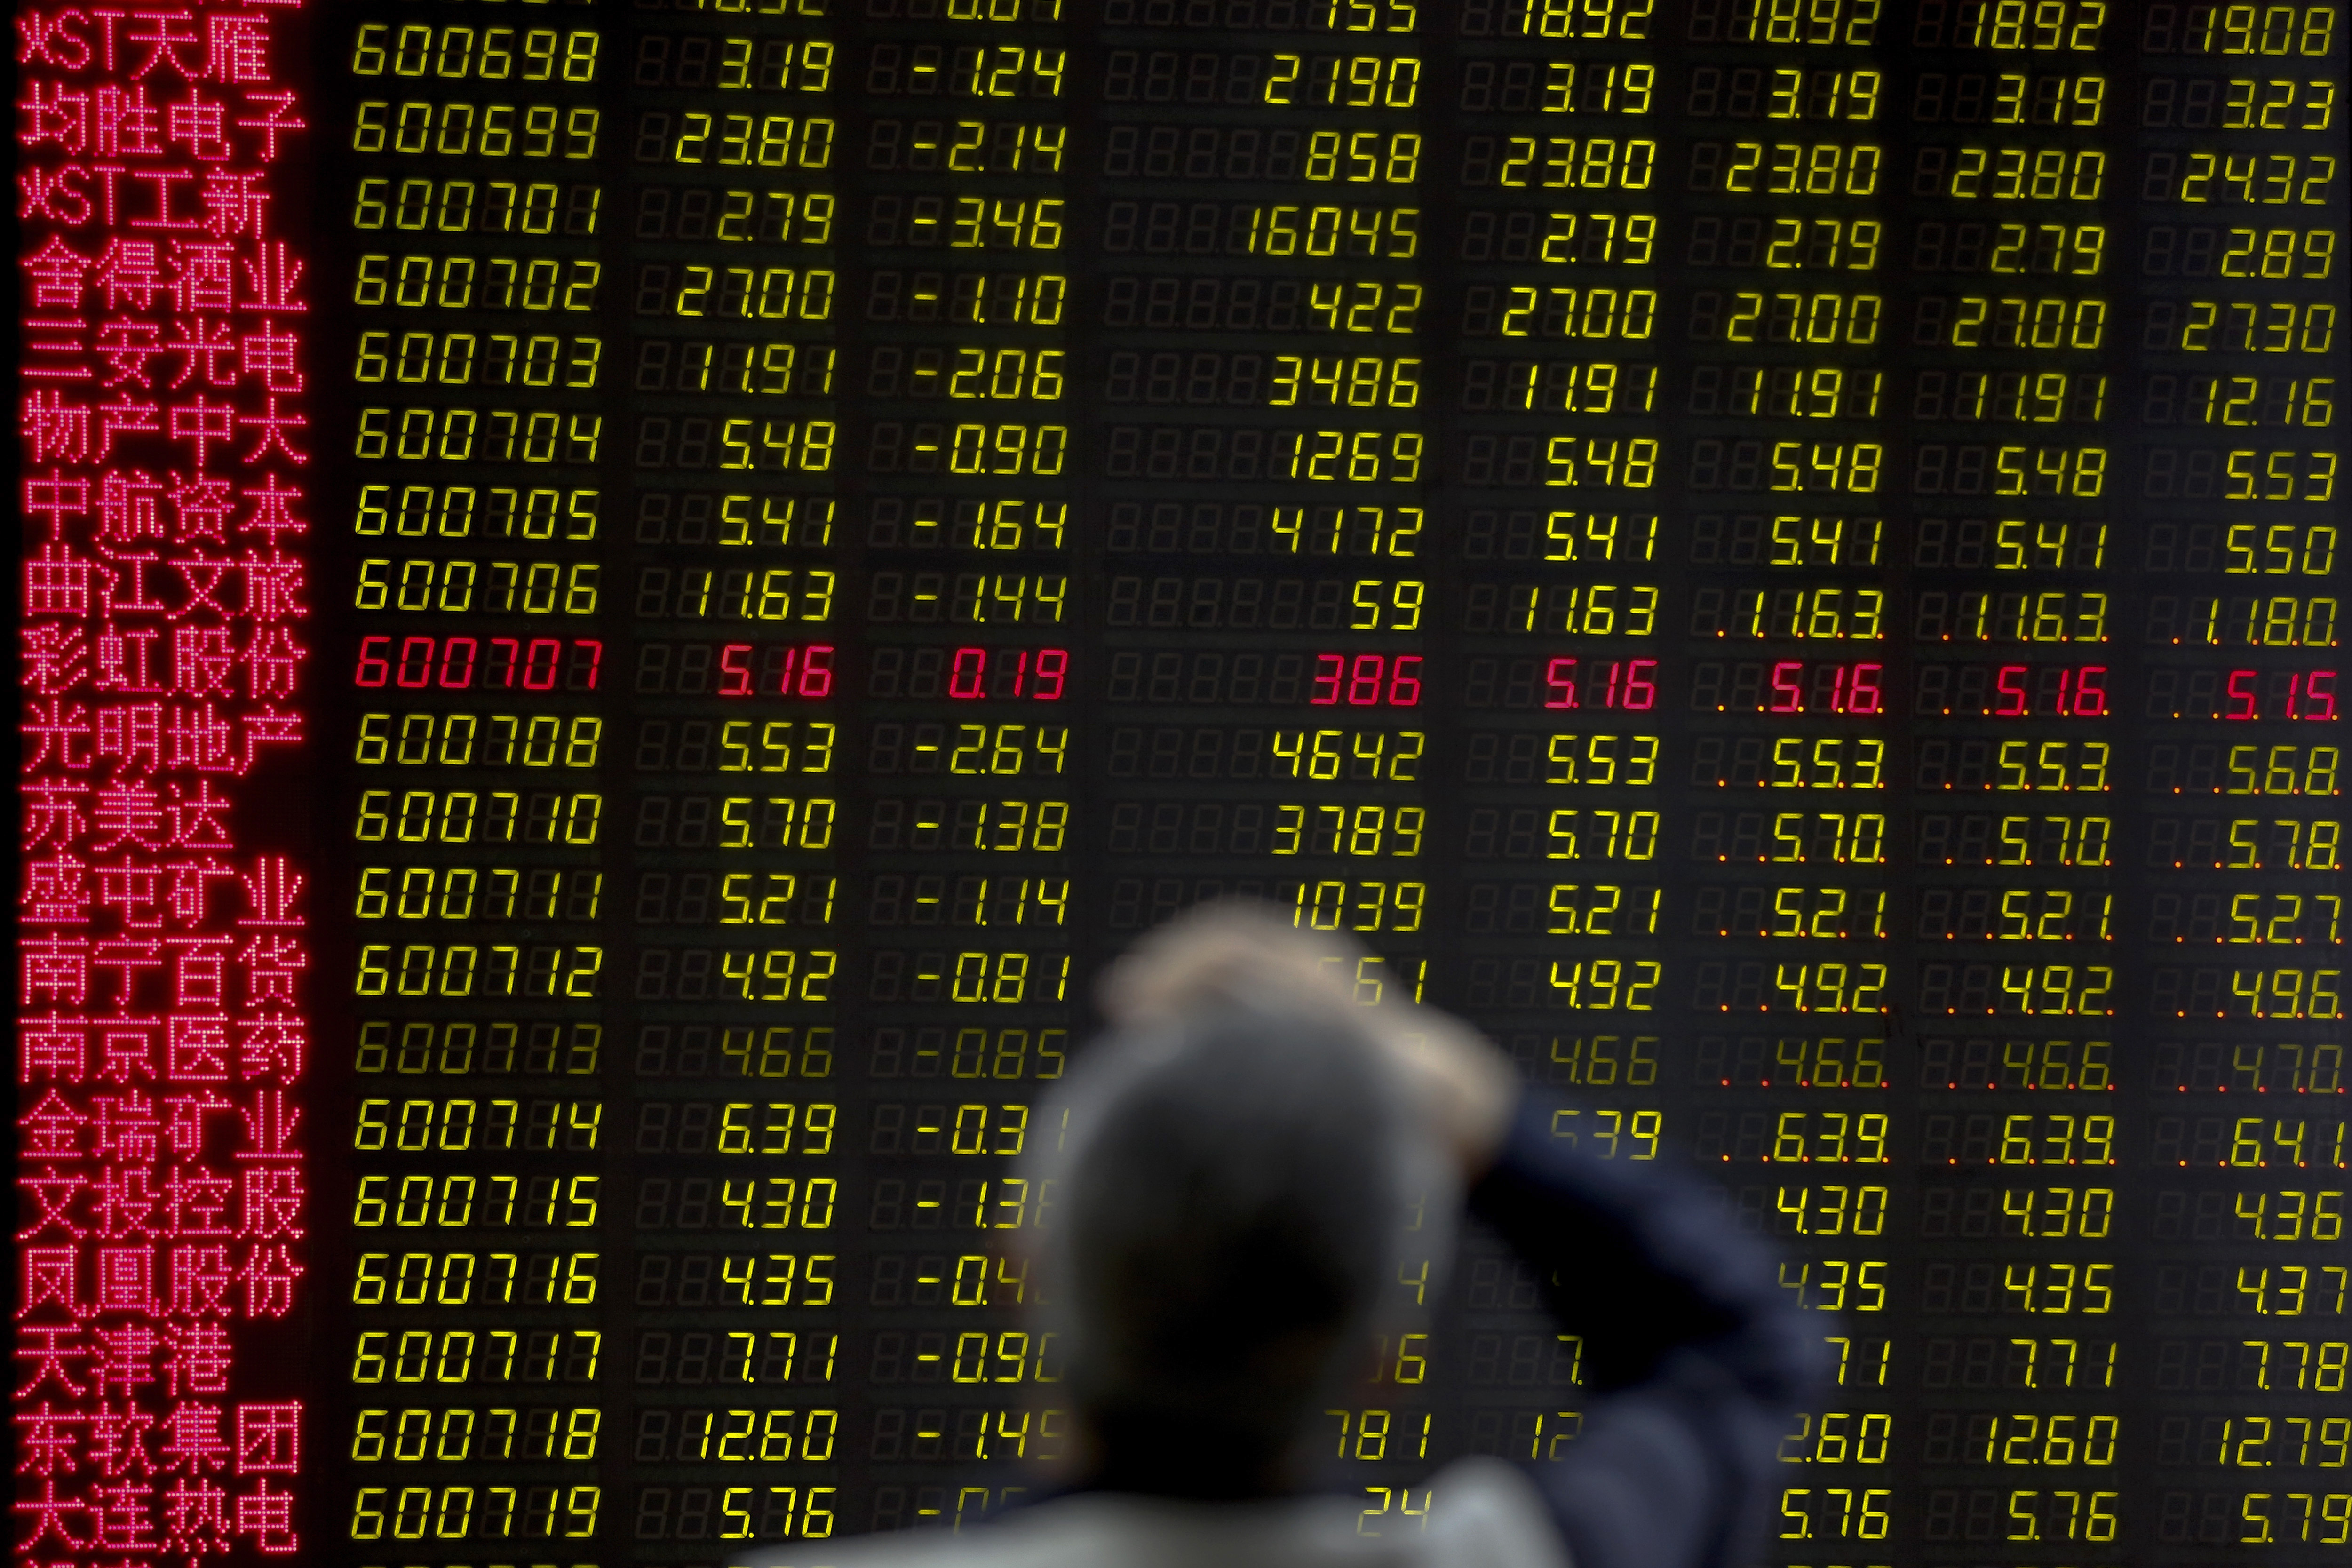 A man rubs his forehead as he monitors stock prices at a brokerage house in Beijing, Monday, May 13, 2019. Shares were mostly lower in Asia on Monday after trade talks between the U.S. and China ended Friday without an agreement.